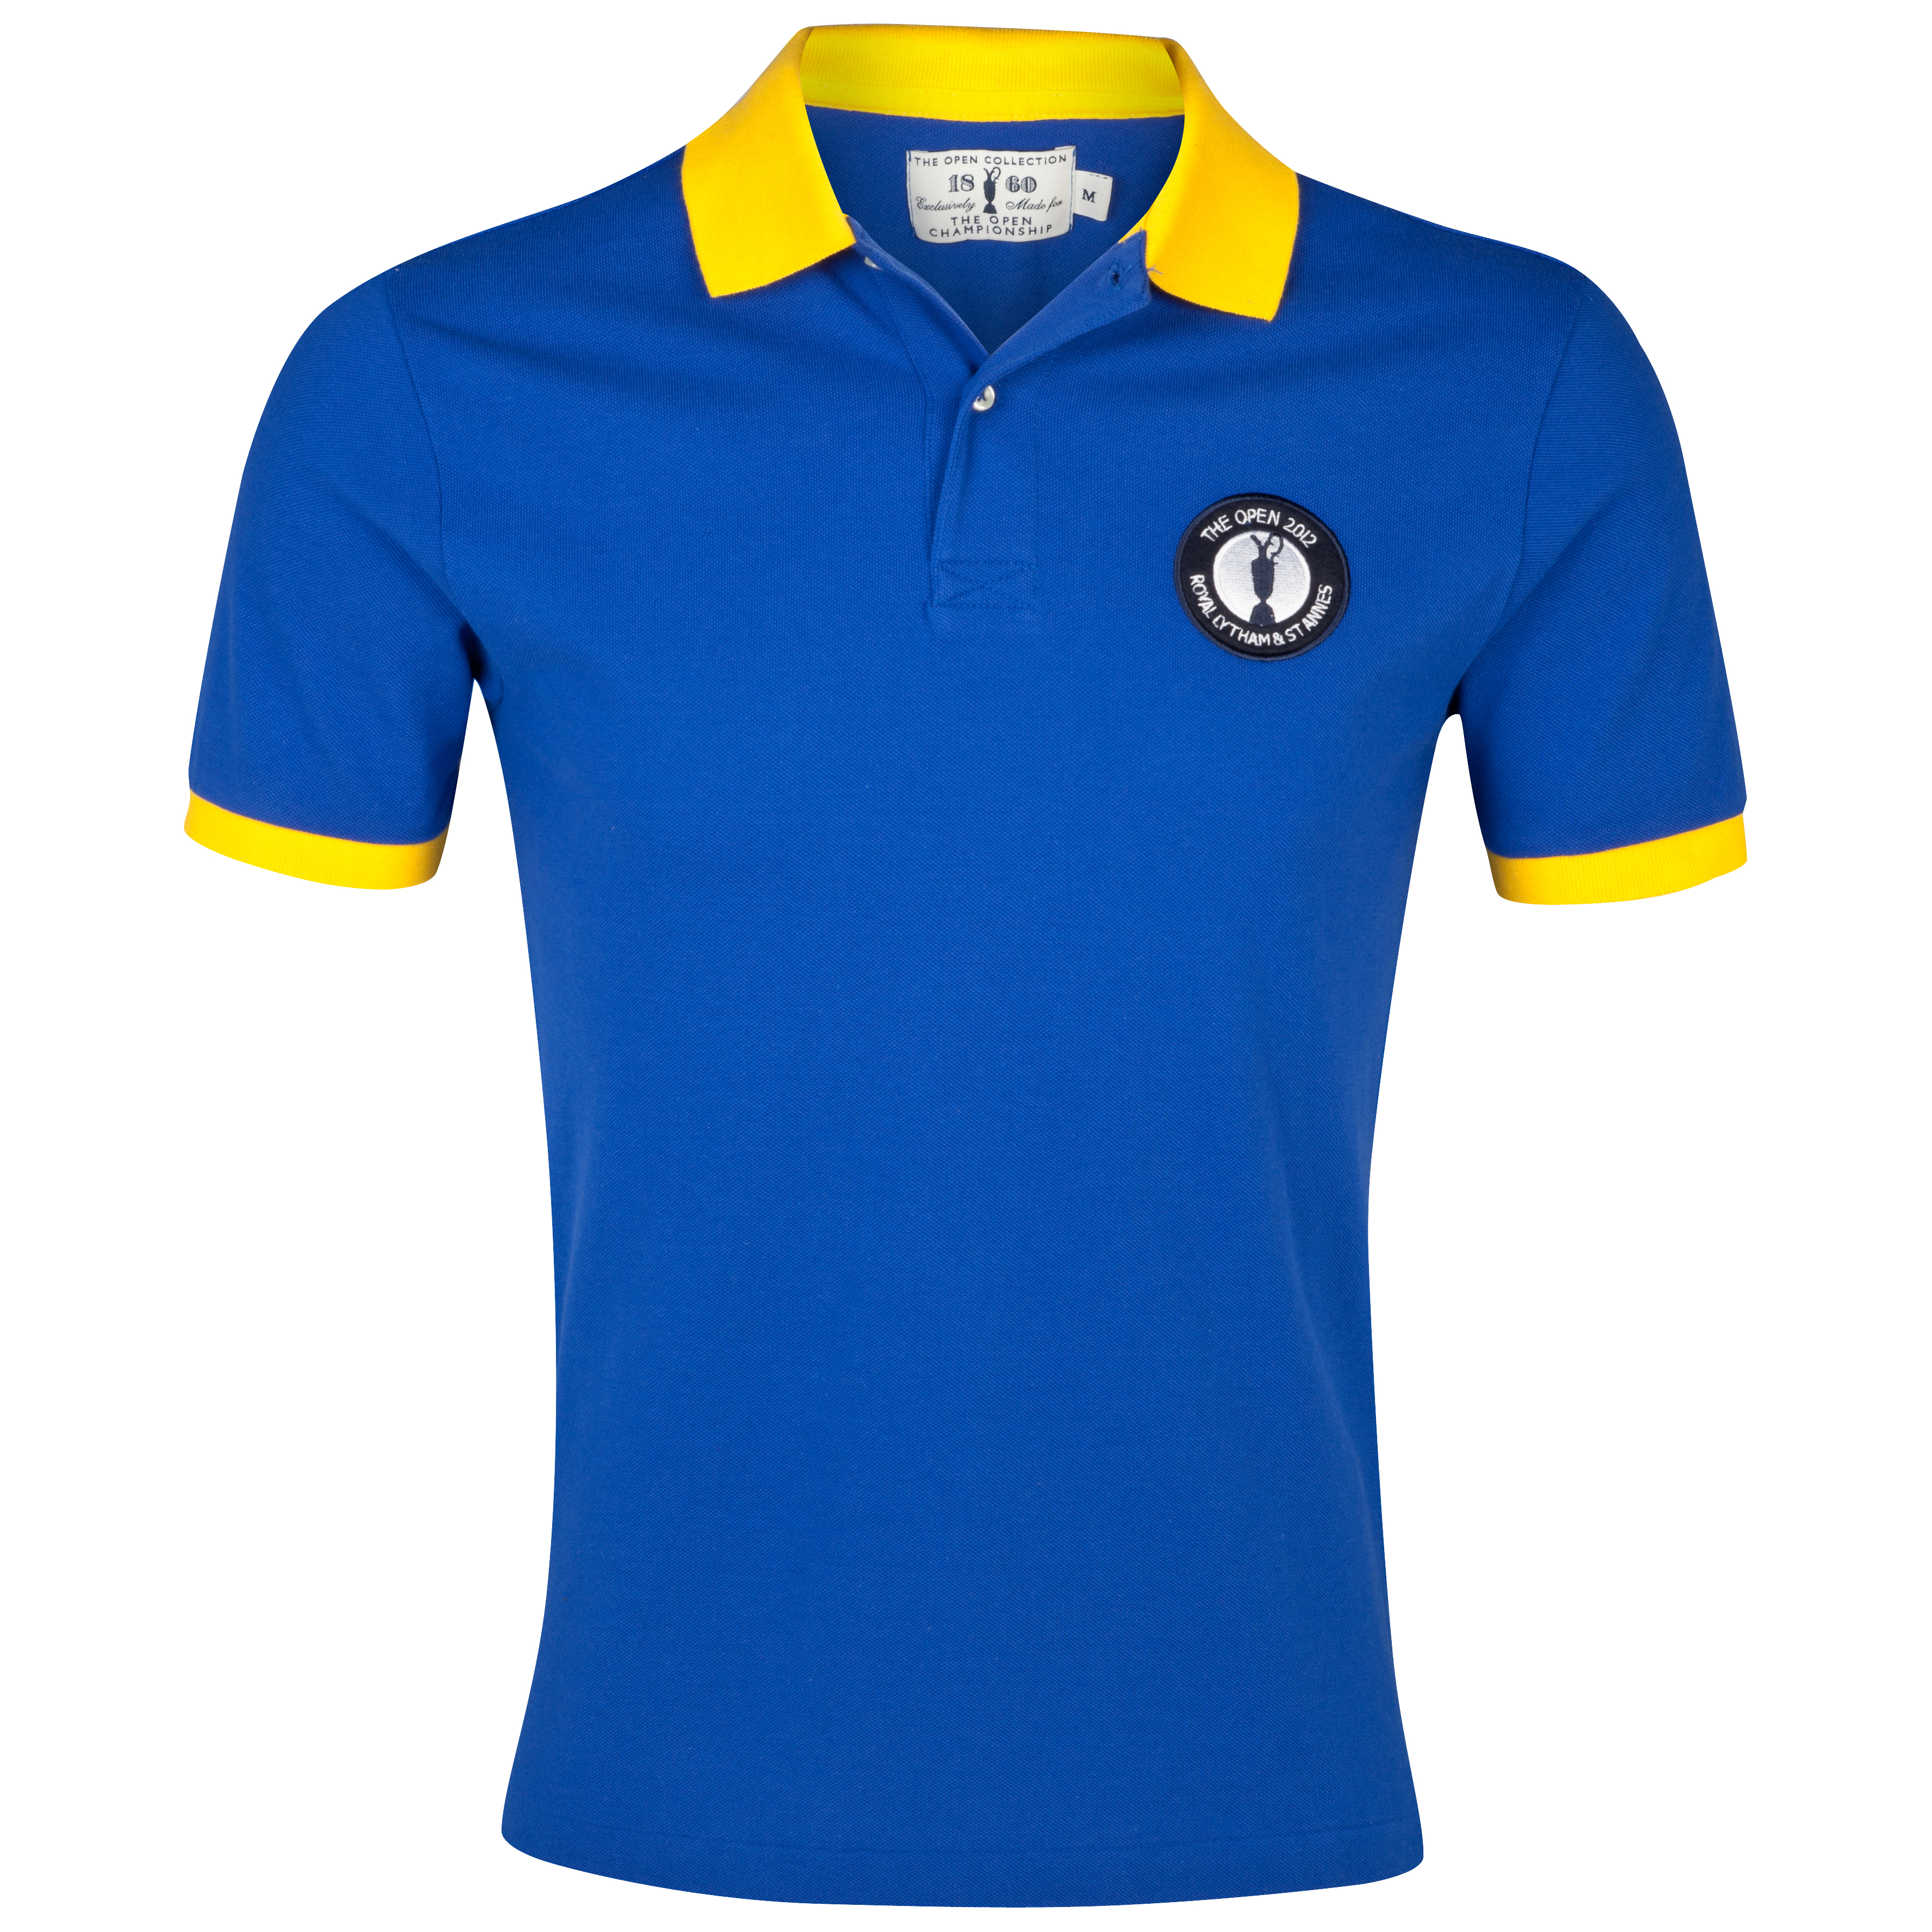 The Open Championship The 2012 Royal Lytham and St. Annes 2012 Polo - Rugby Royal/Slicker Yellow